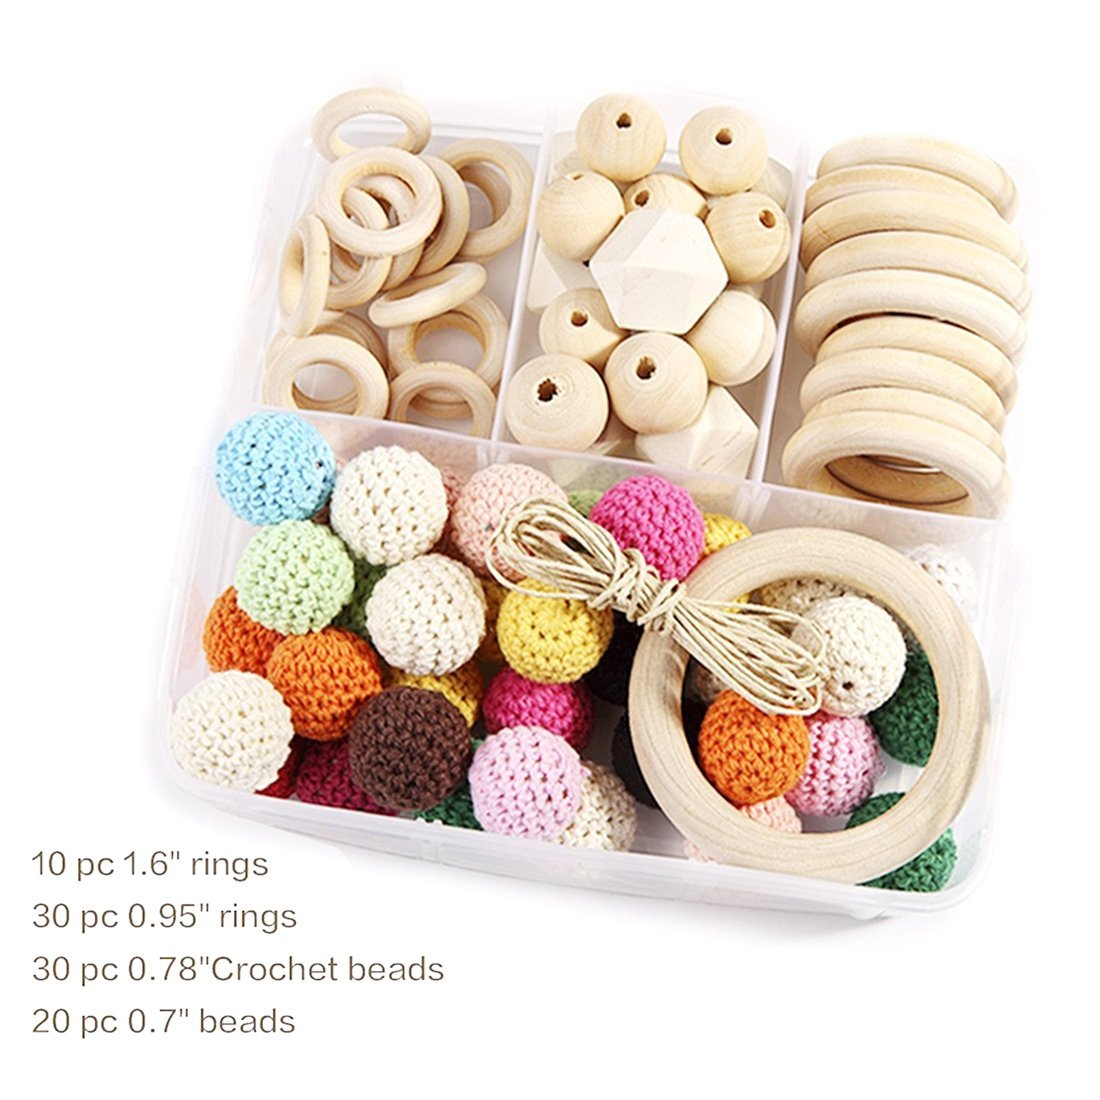 Natural Wooden Rings and Wooden Crochet Set DIY Nursing Necklace Teething Necklace Set Eco Baby Teether New Baby Accessories Nursing